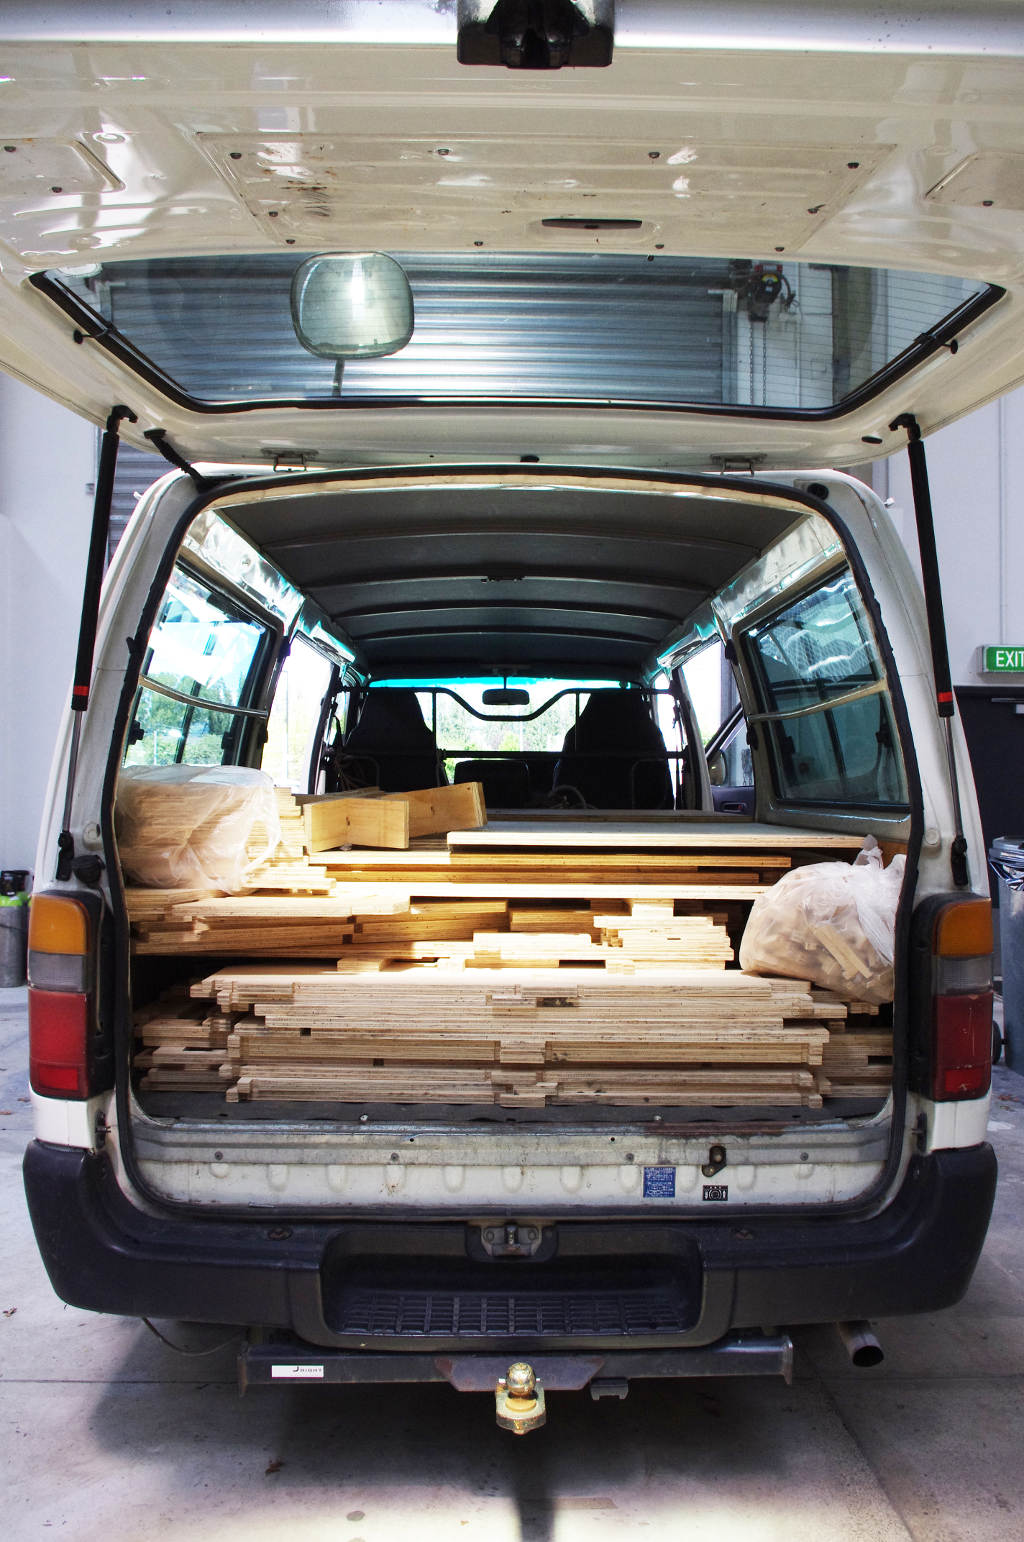 The whole WikiHouse packs down into a standard van in around an hour